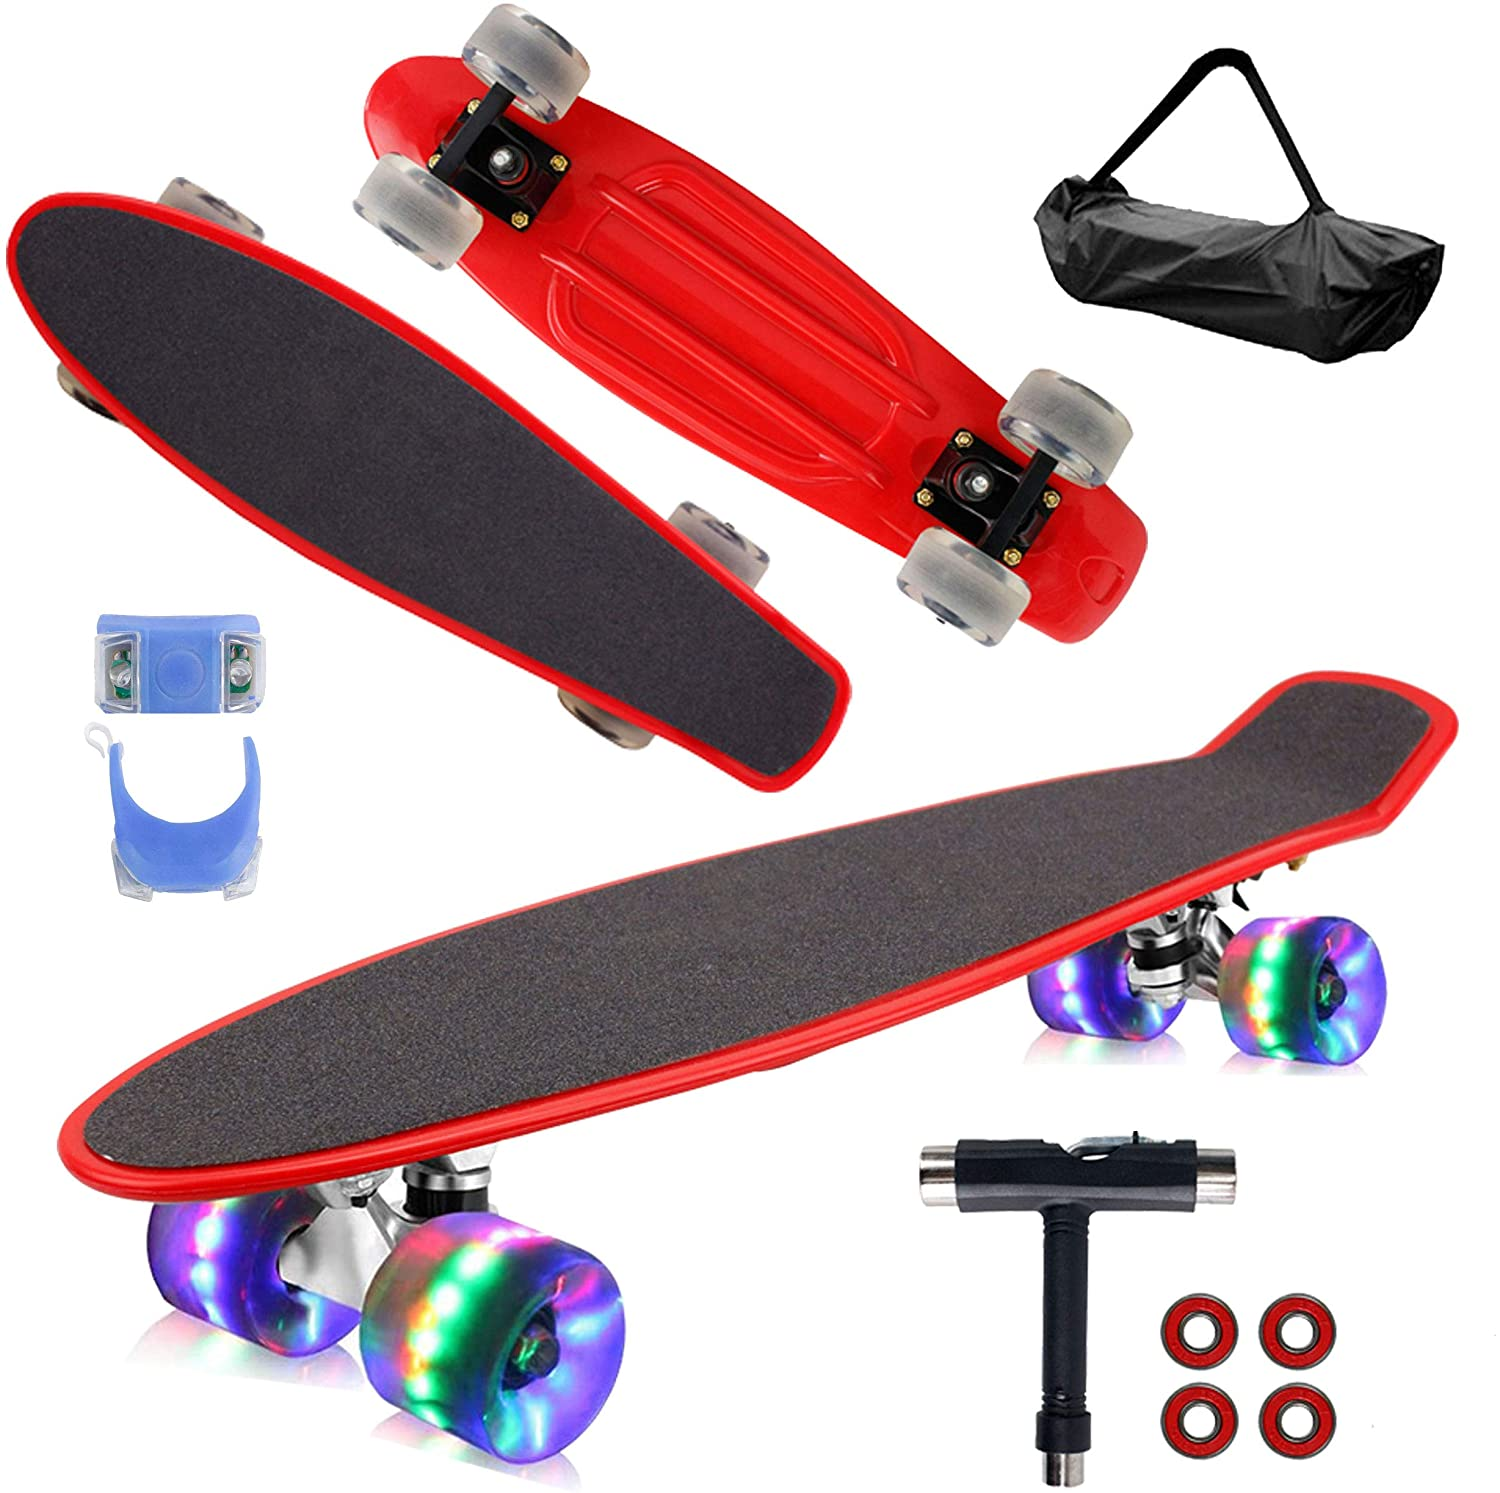 Details about  /22 Board Cruiser Skateboard with LED Light Up Wheels for Beginners 3 Color^9